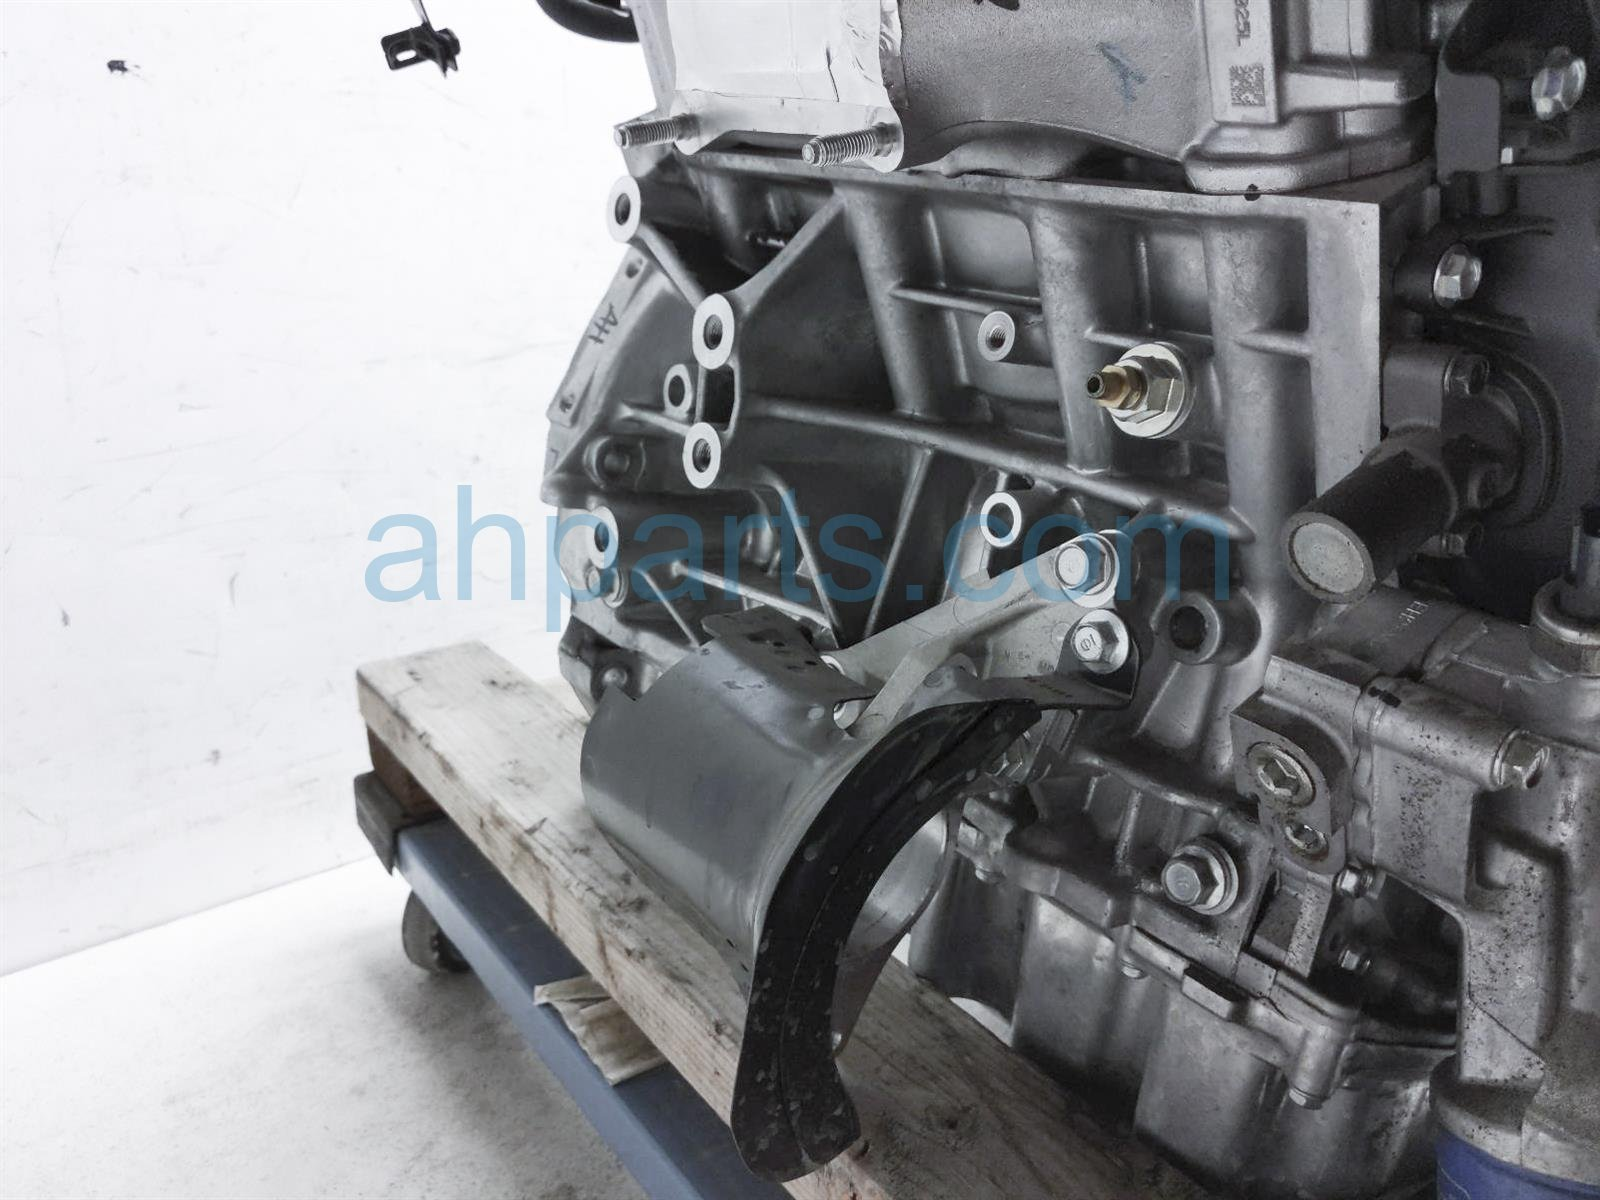 2019 Honda Pilot Motor / Engine = 11k Miles   10002 5J6 A02 Replacement